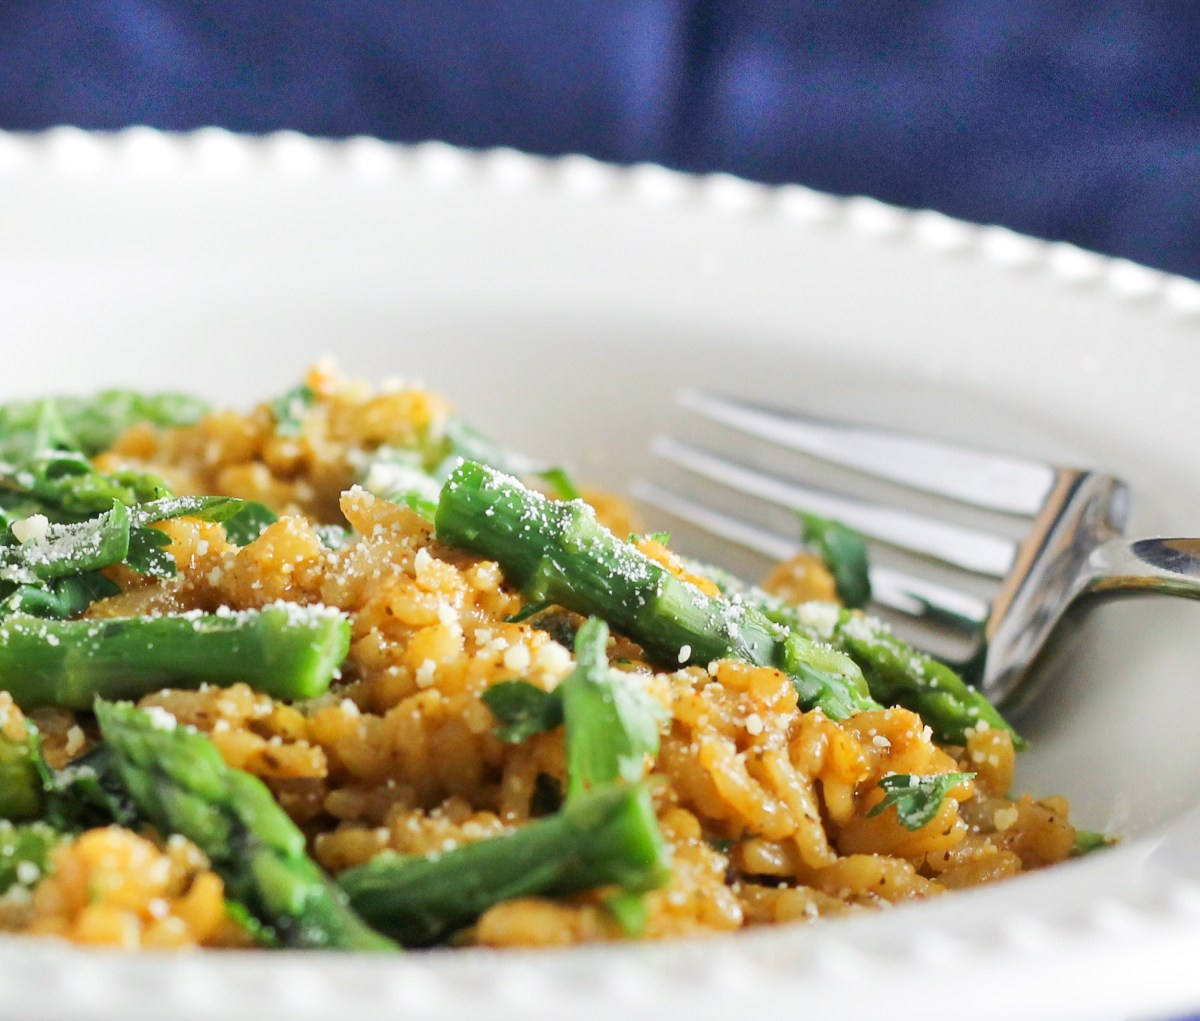 Lemon Chicken and Asparagus Risotto